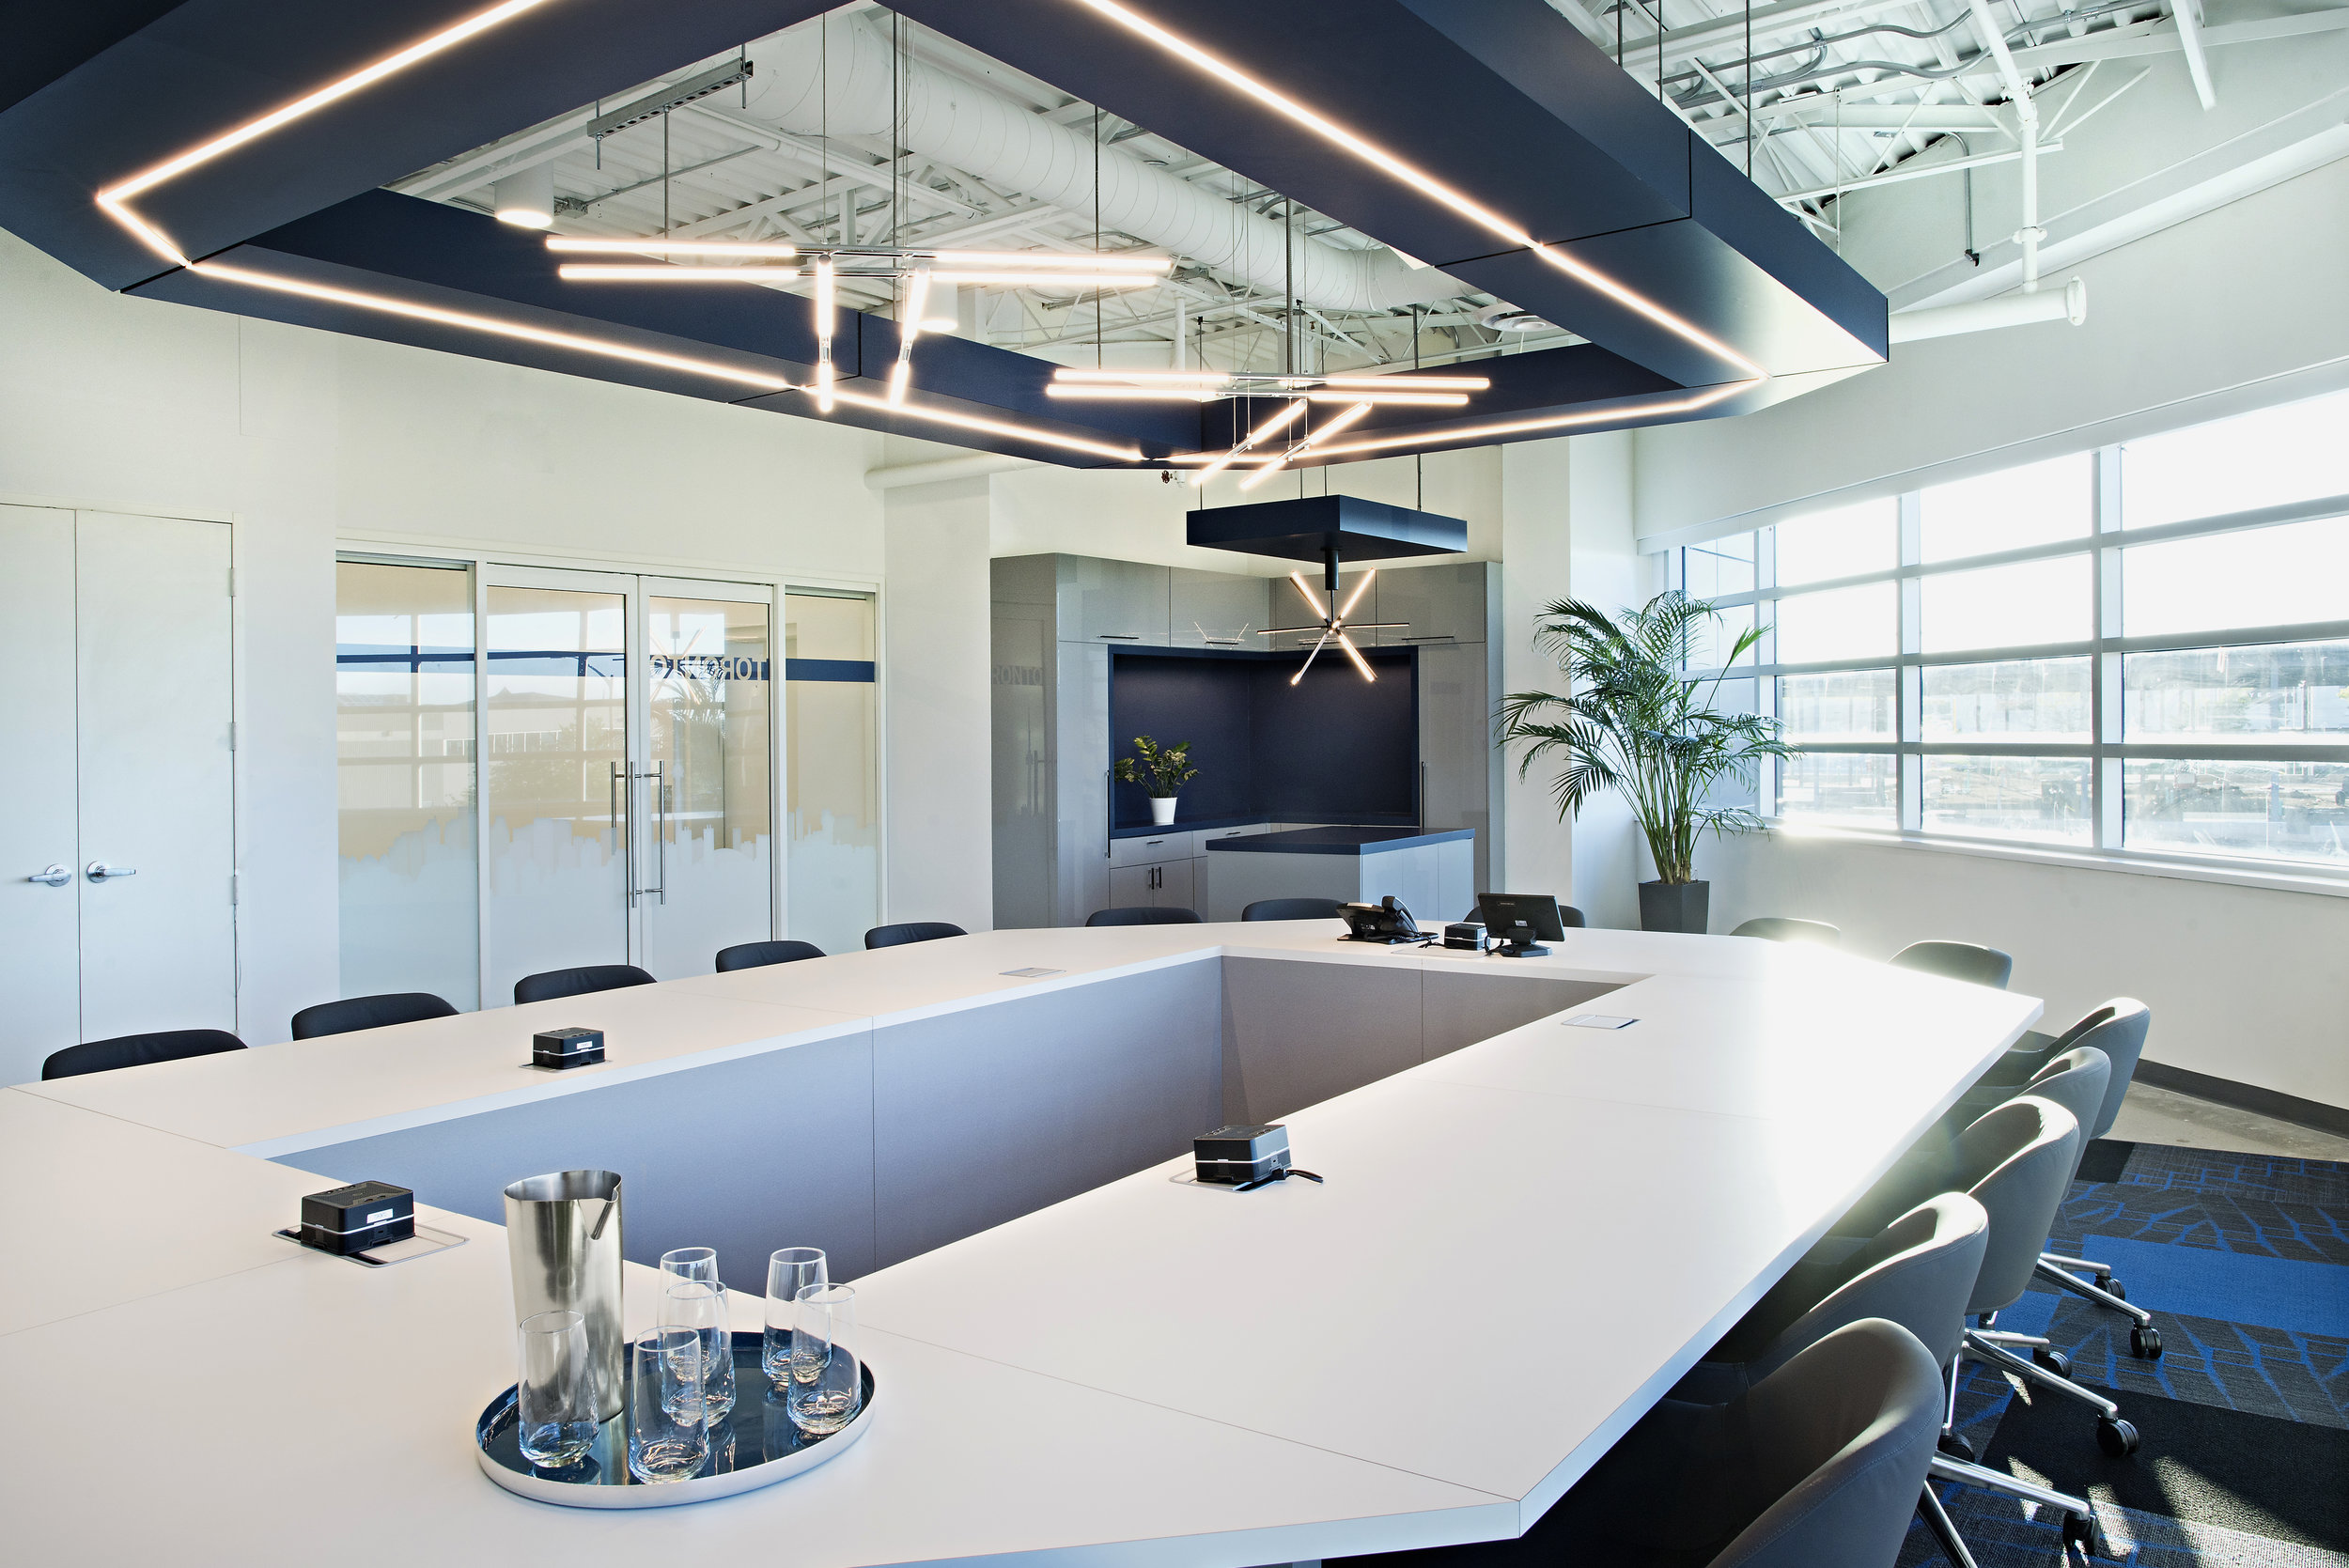 10 pizzale design interior design commercial office space conference room modern contemporary light fixture grey and blue small kitchen space custom desk power modules natural light glass sliding doors black hardware indoor palm tree black planter.jpg